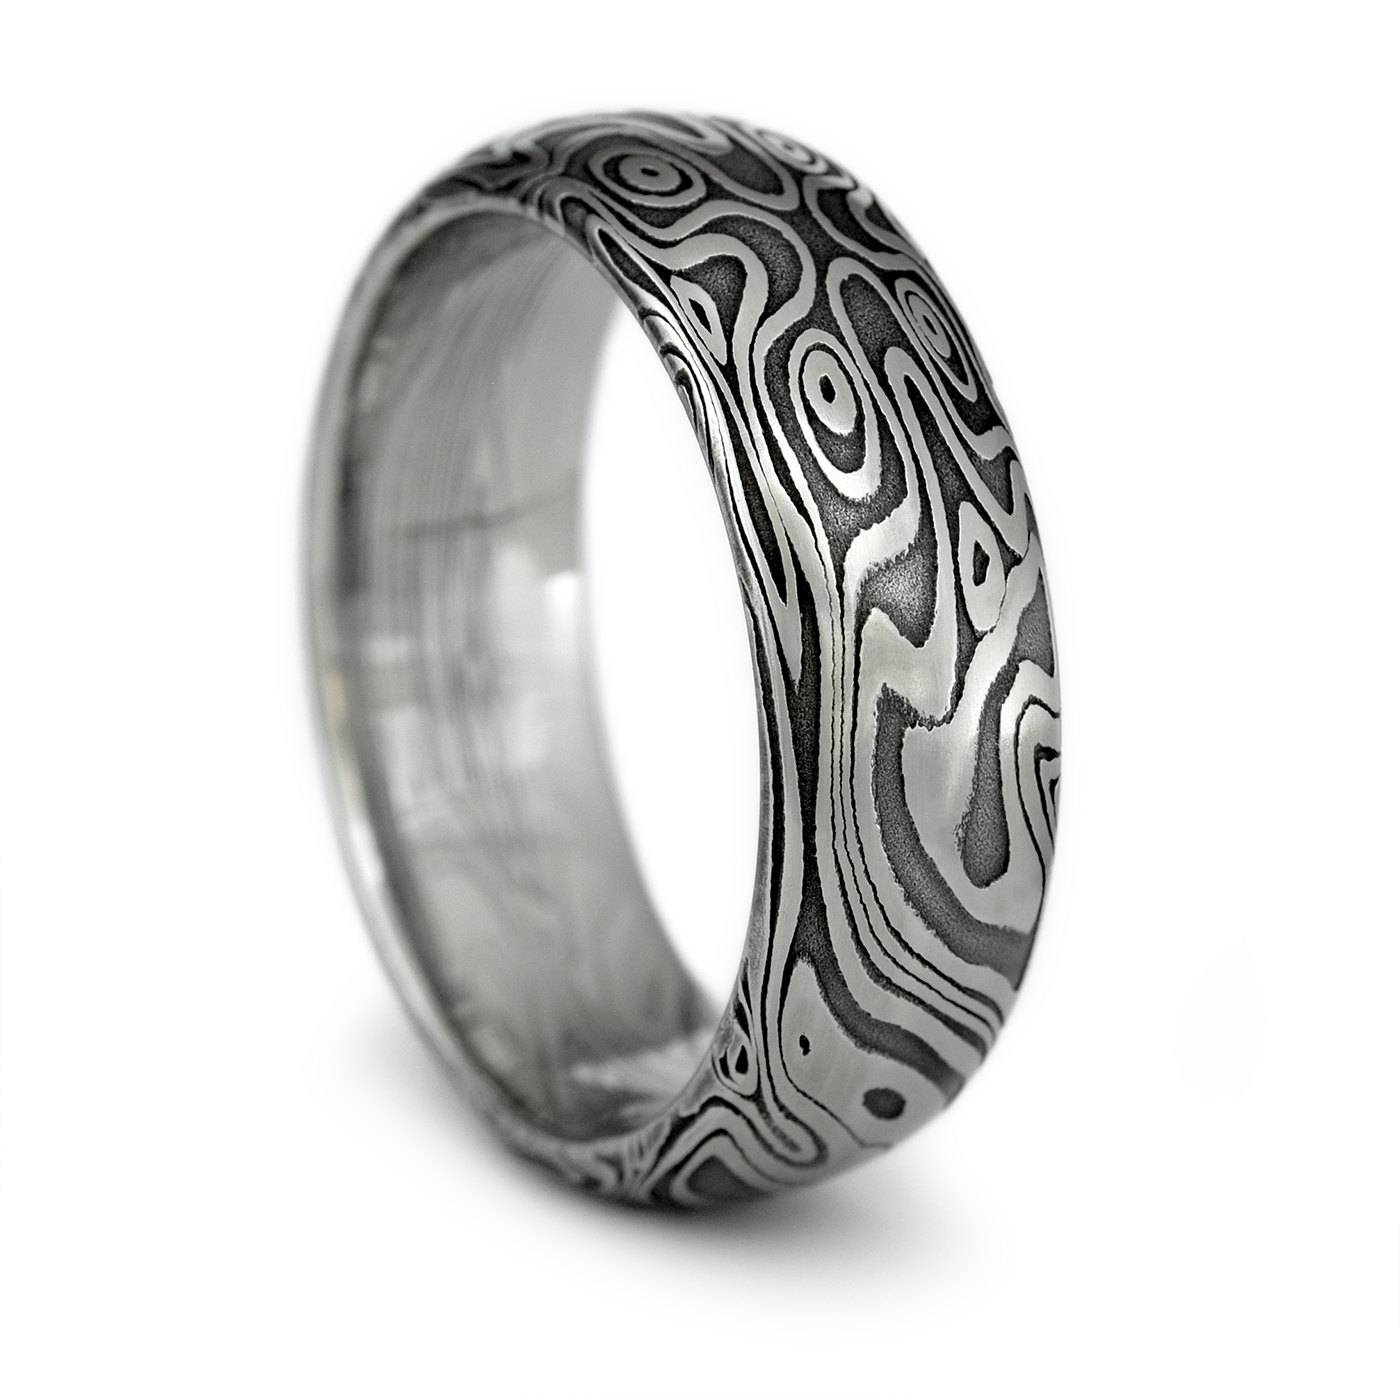 Wood Grain Ring Damascus Steel Men's Domed Wedding Band With Regard To Men's Damascus Wedding Bands (View 6 of 15)